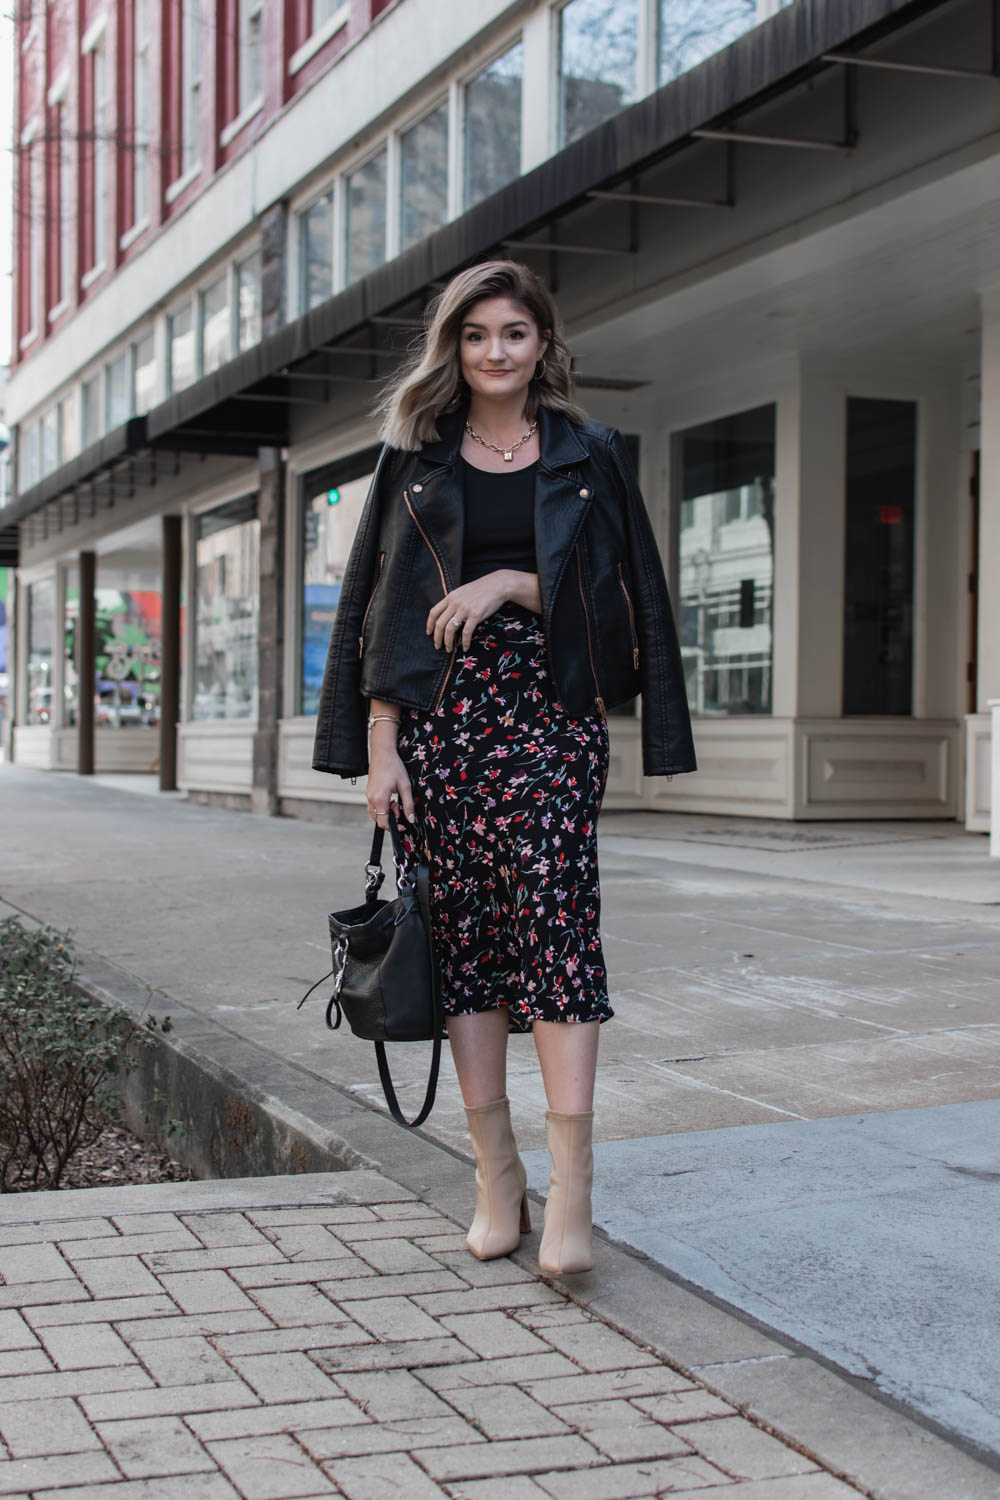 1 floral skirt styled to create 3 transitional spring outfits.